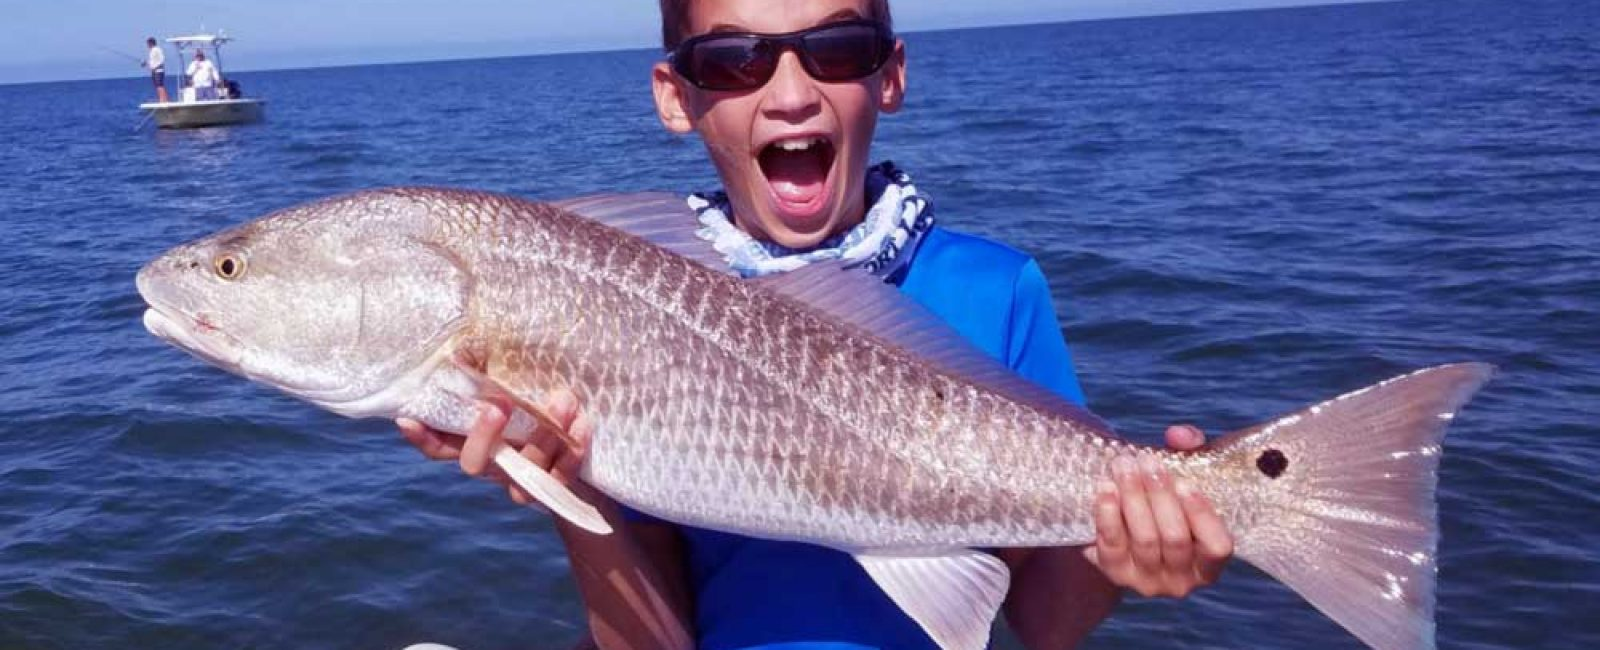 Riley-redfish